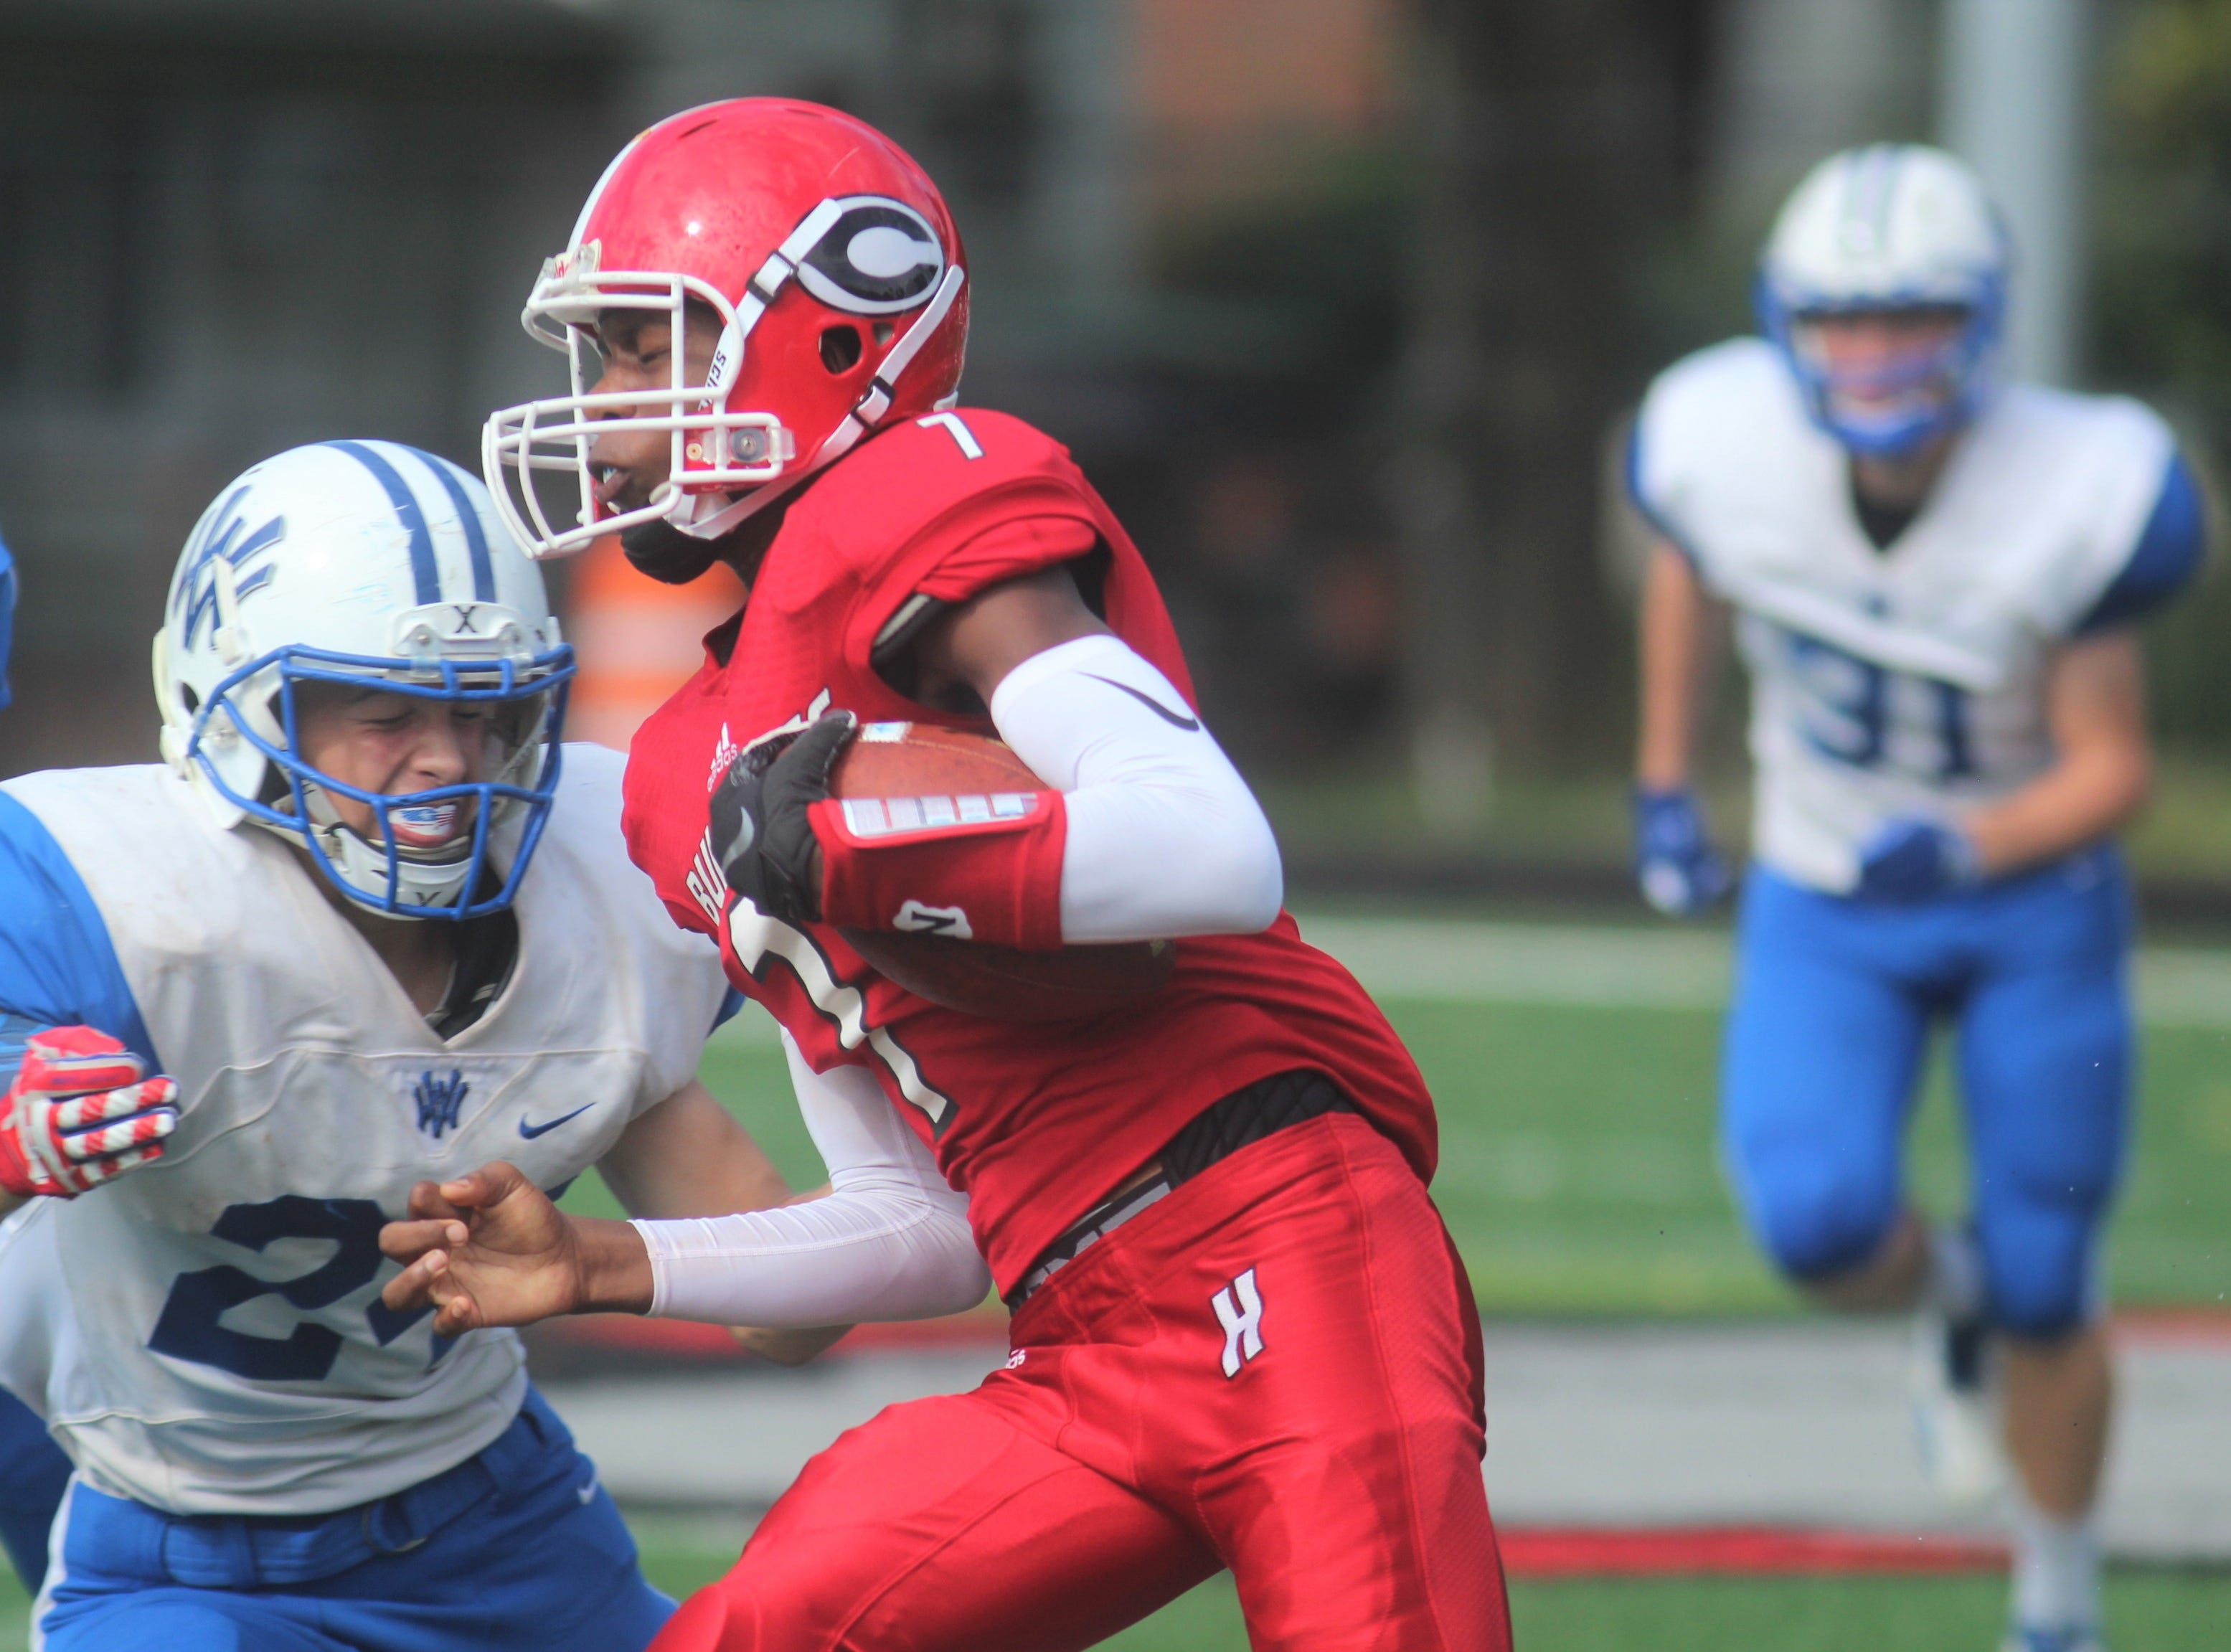 Holmes junior Ben Girton runs upfield during Walton-Verona's 48-0 win over Holmes Sept. 1 at Holmes High School The game concluded on Saturday morning after being suspended at halftime because of weather.